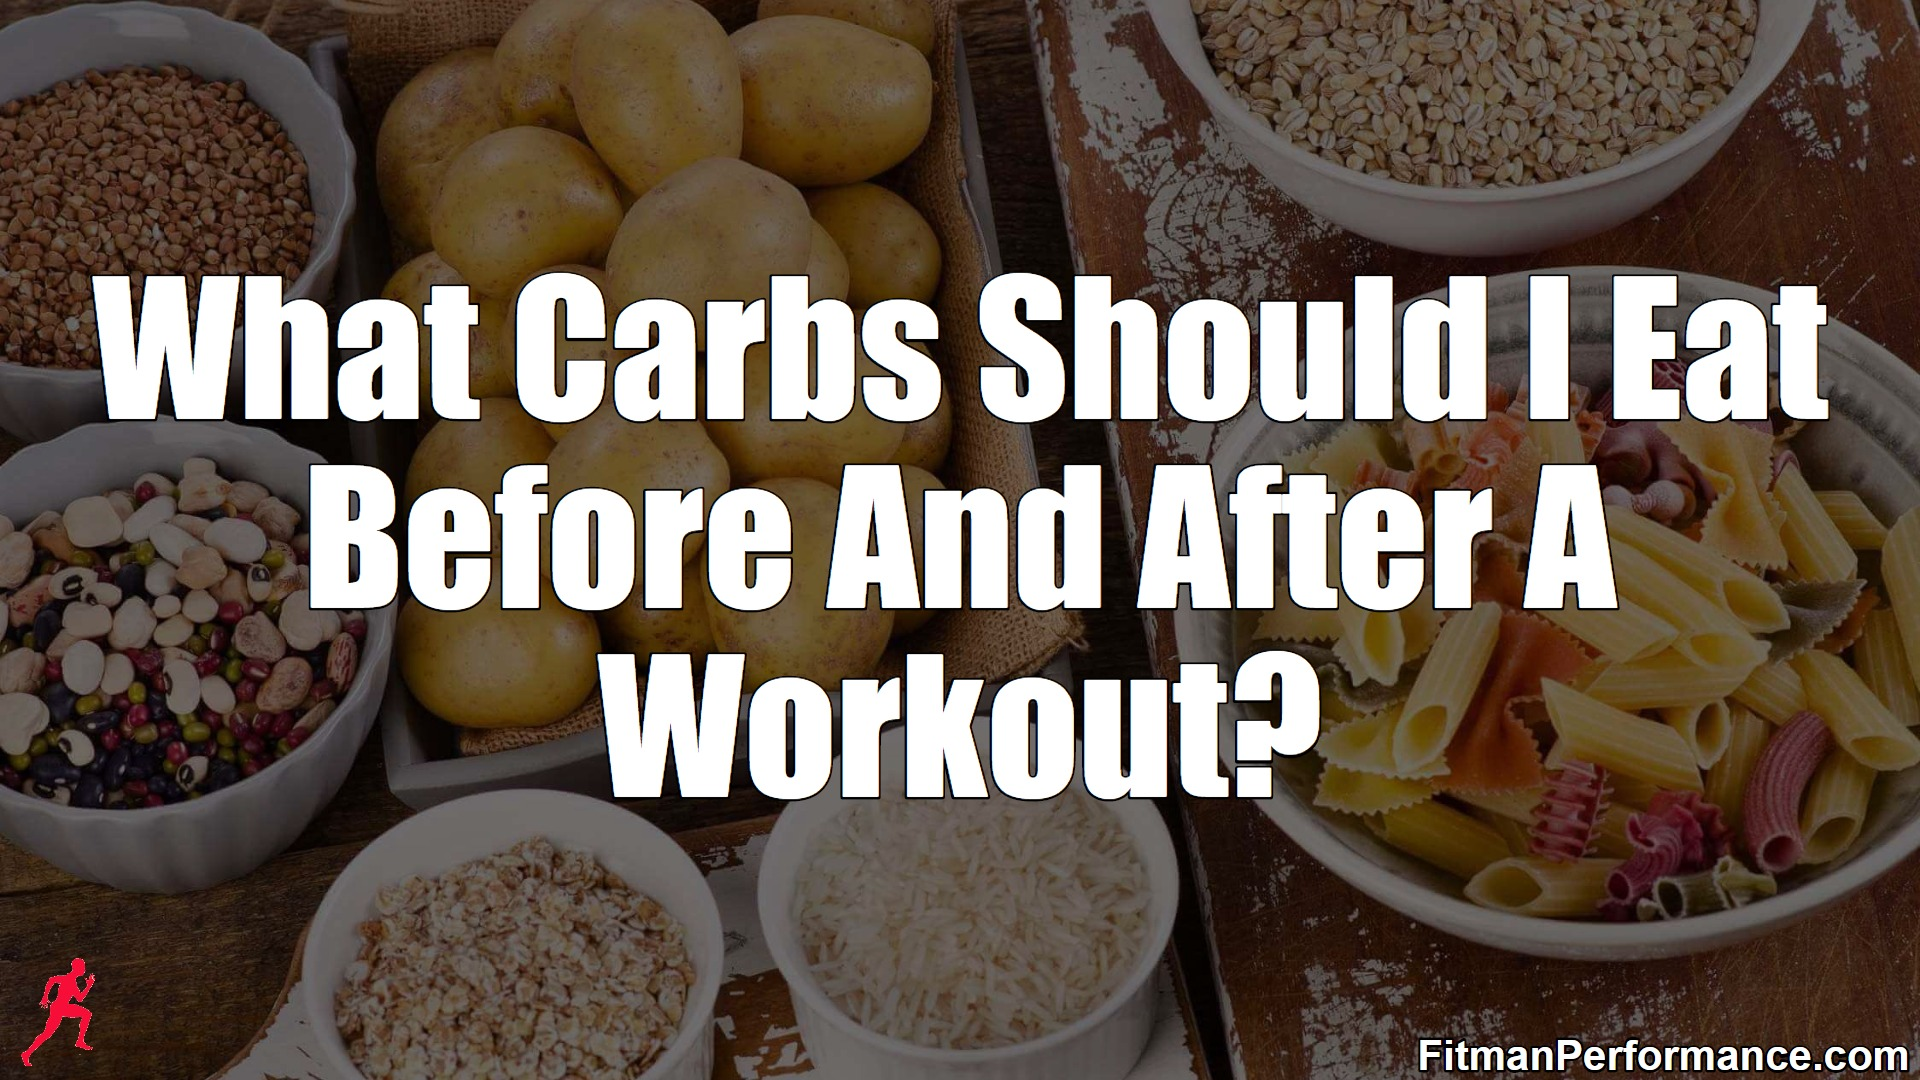 What Carbs To Eat Before And After A Workout